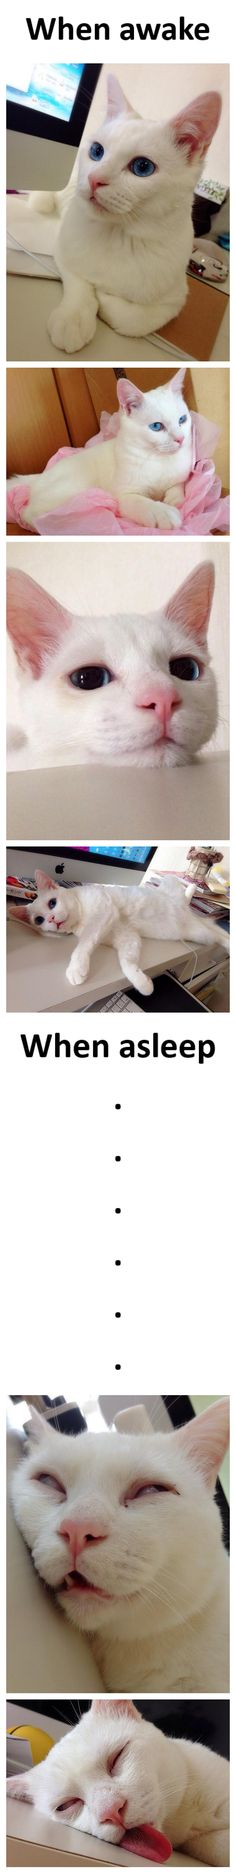 When a gorgeous cat sleeps... BAHAHAHA! So cute though!